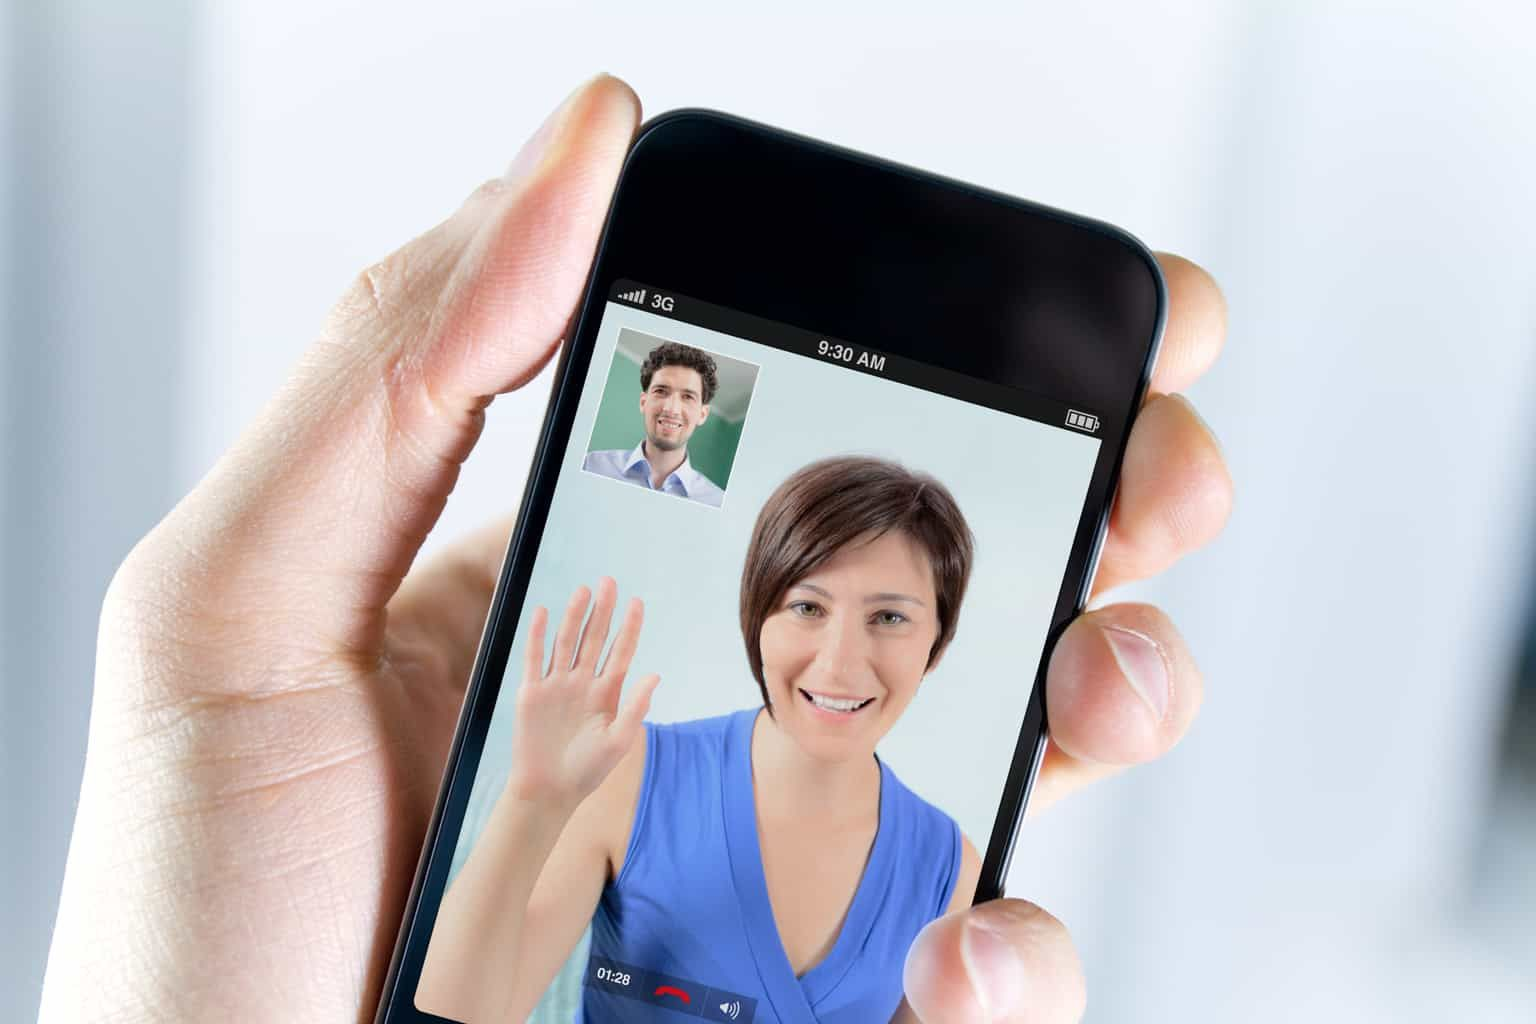 Zoom Web Conferencing Vs Skype Conference Call For Small Business